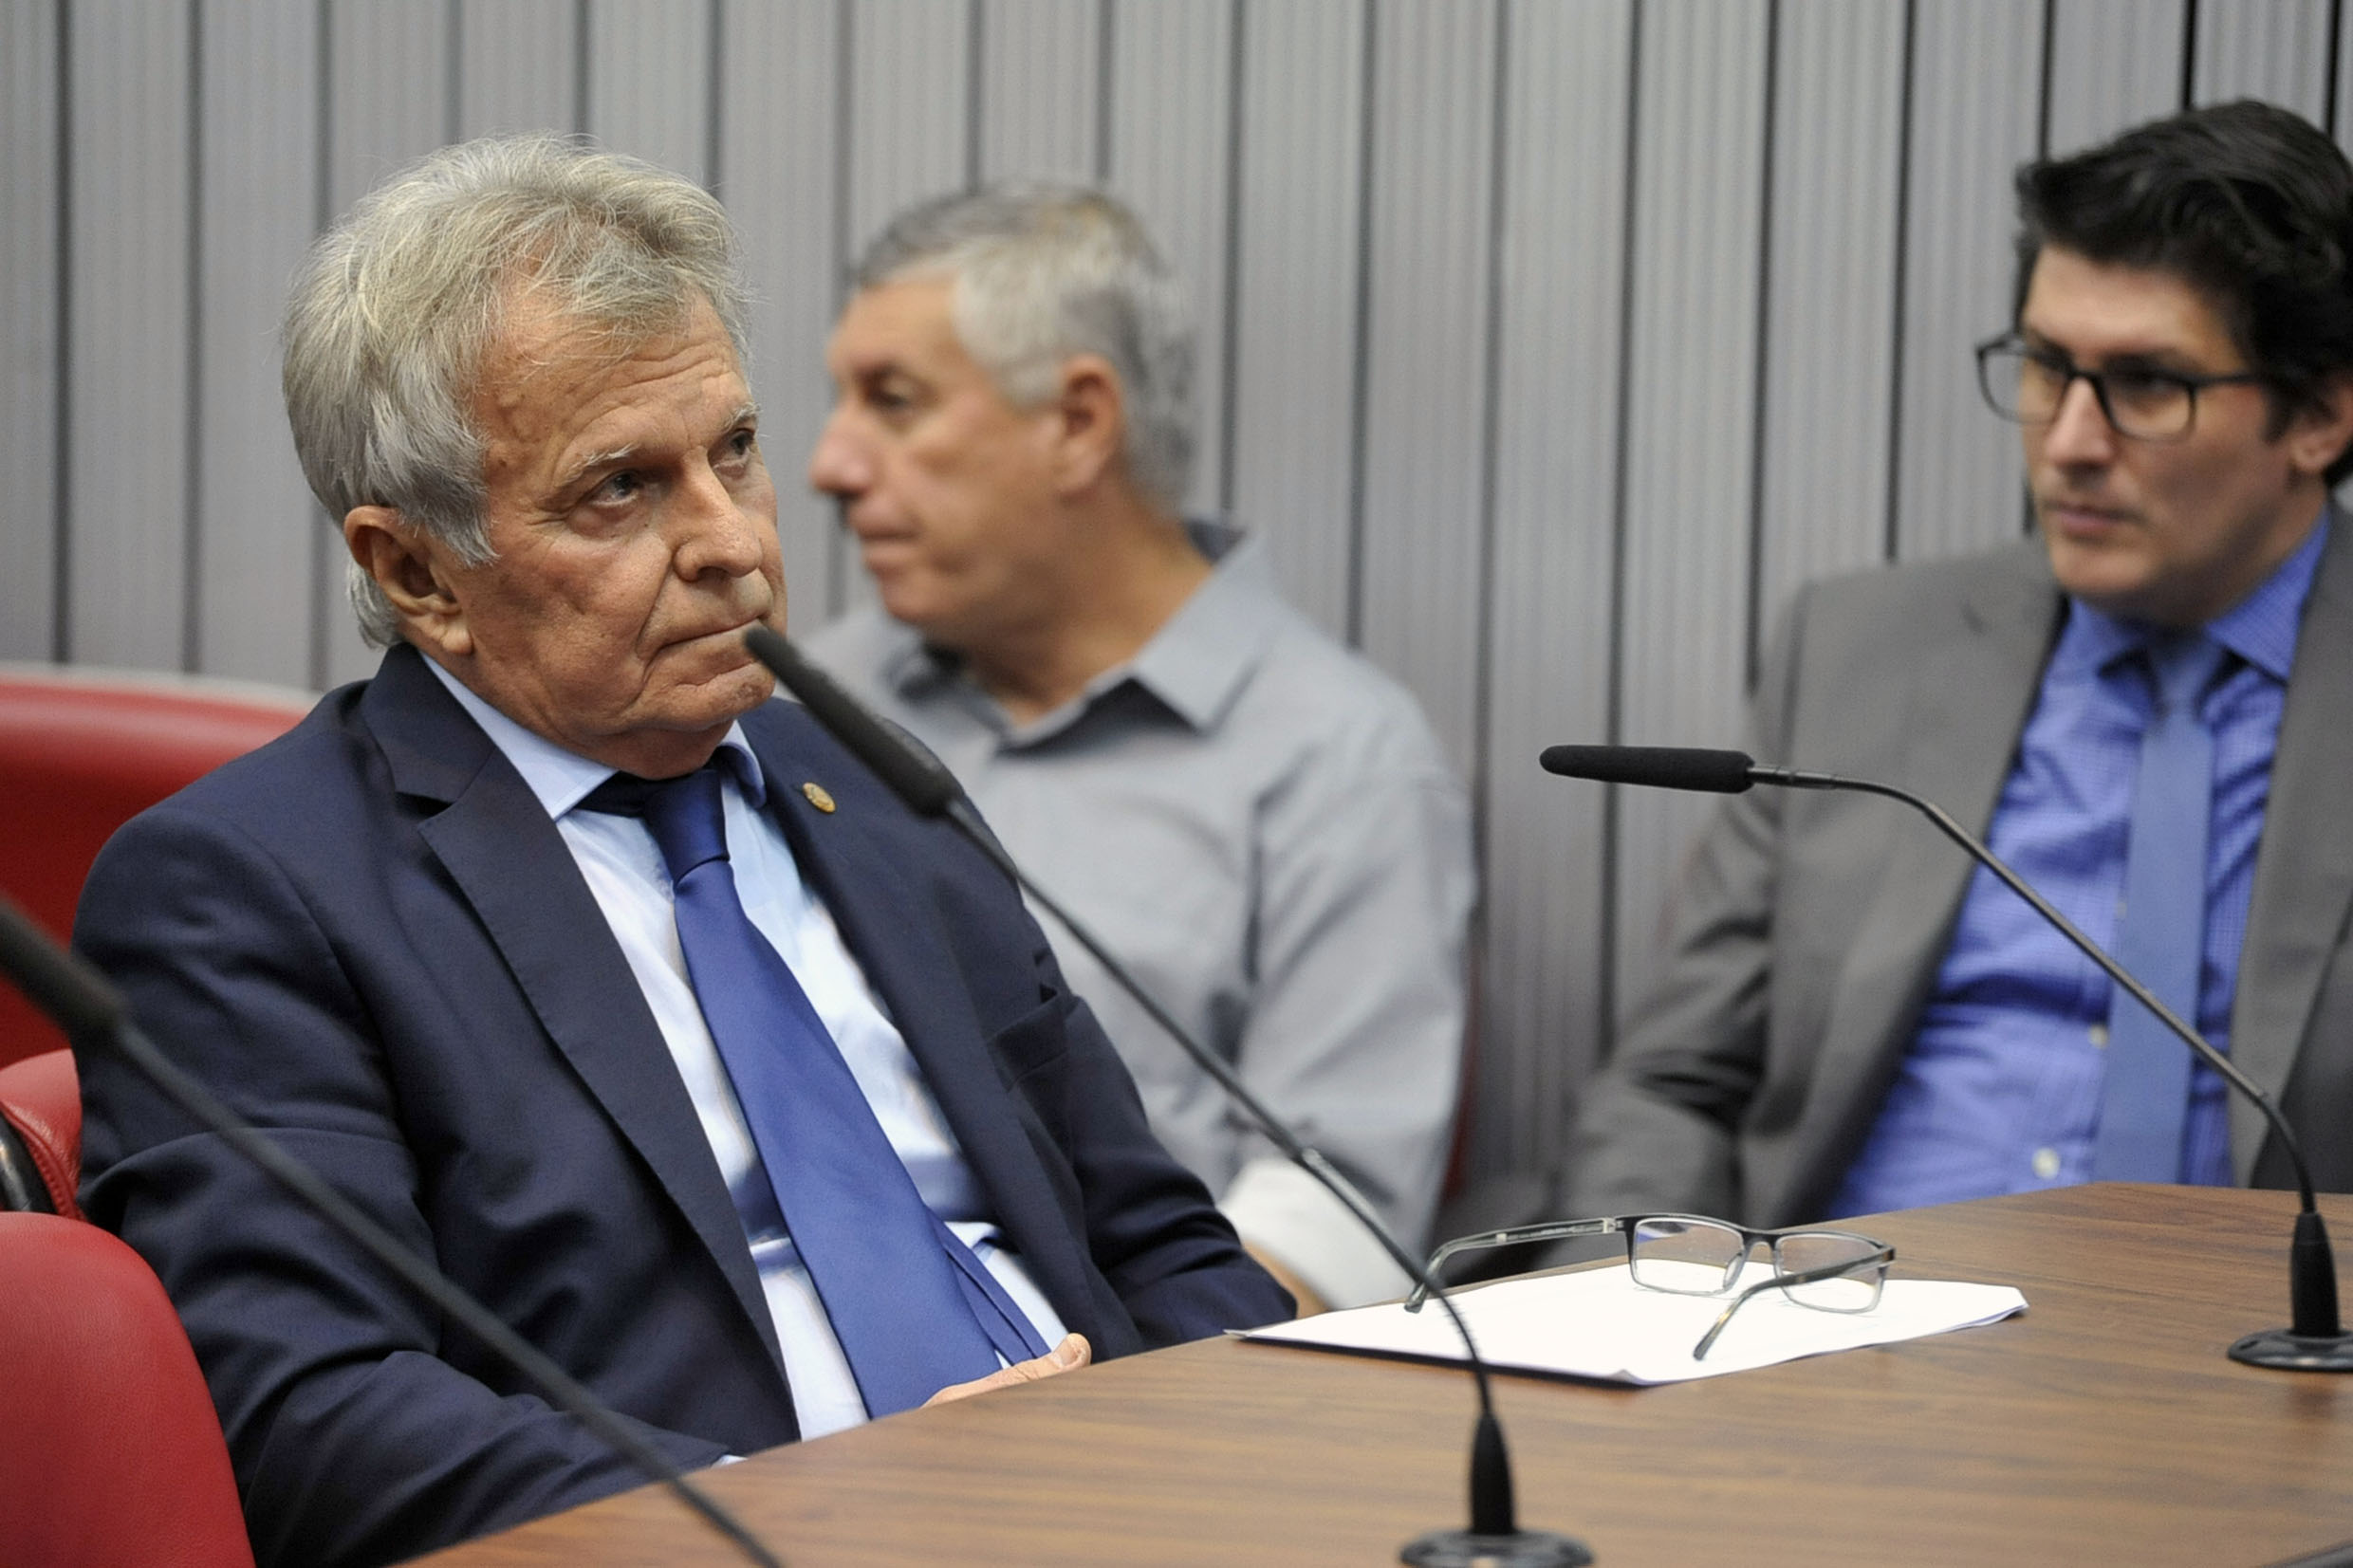 Parlamentares na comissão<a style='float:right' href='https://www3.al.sp.gov.br/repositorio/noticia/N-04-2019/fg233428.jpg' target=_blank><img src='/_img/material-file-download-white.png' width='14px' alt='Clique para baixar a imagem'></a>